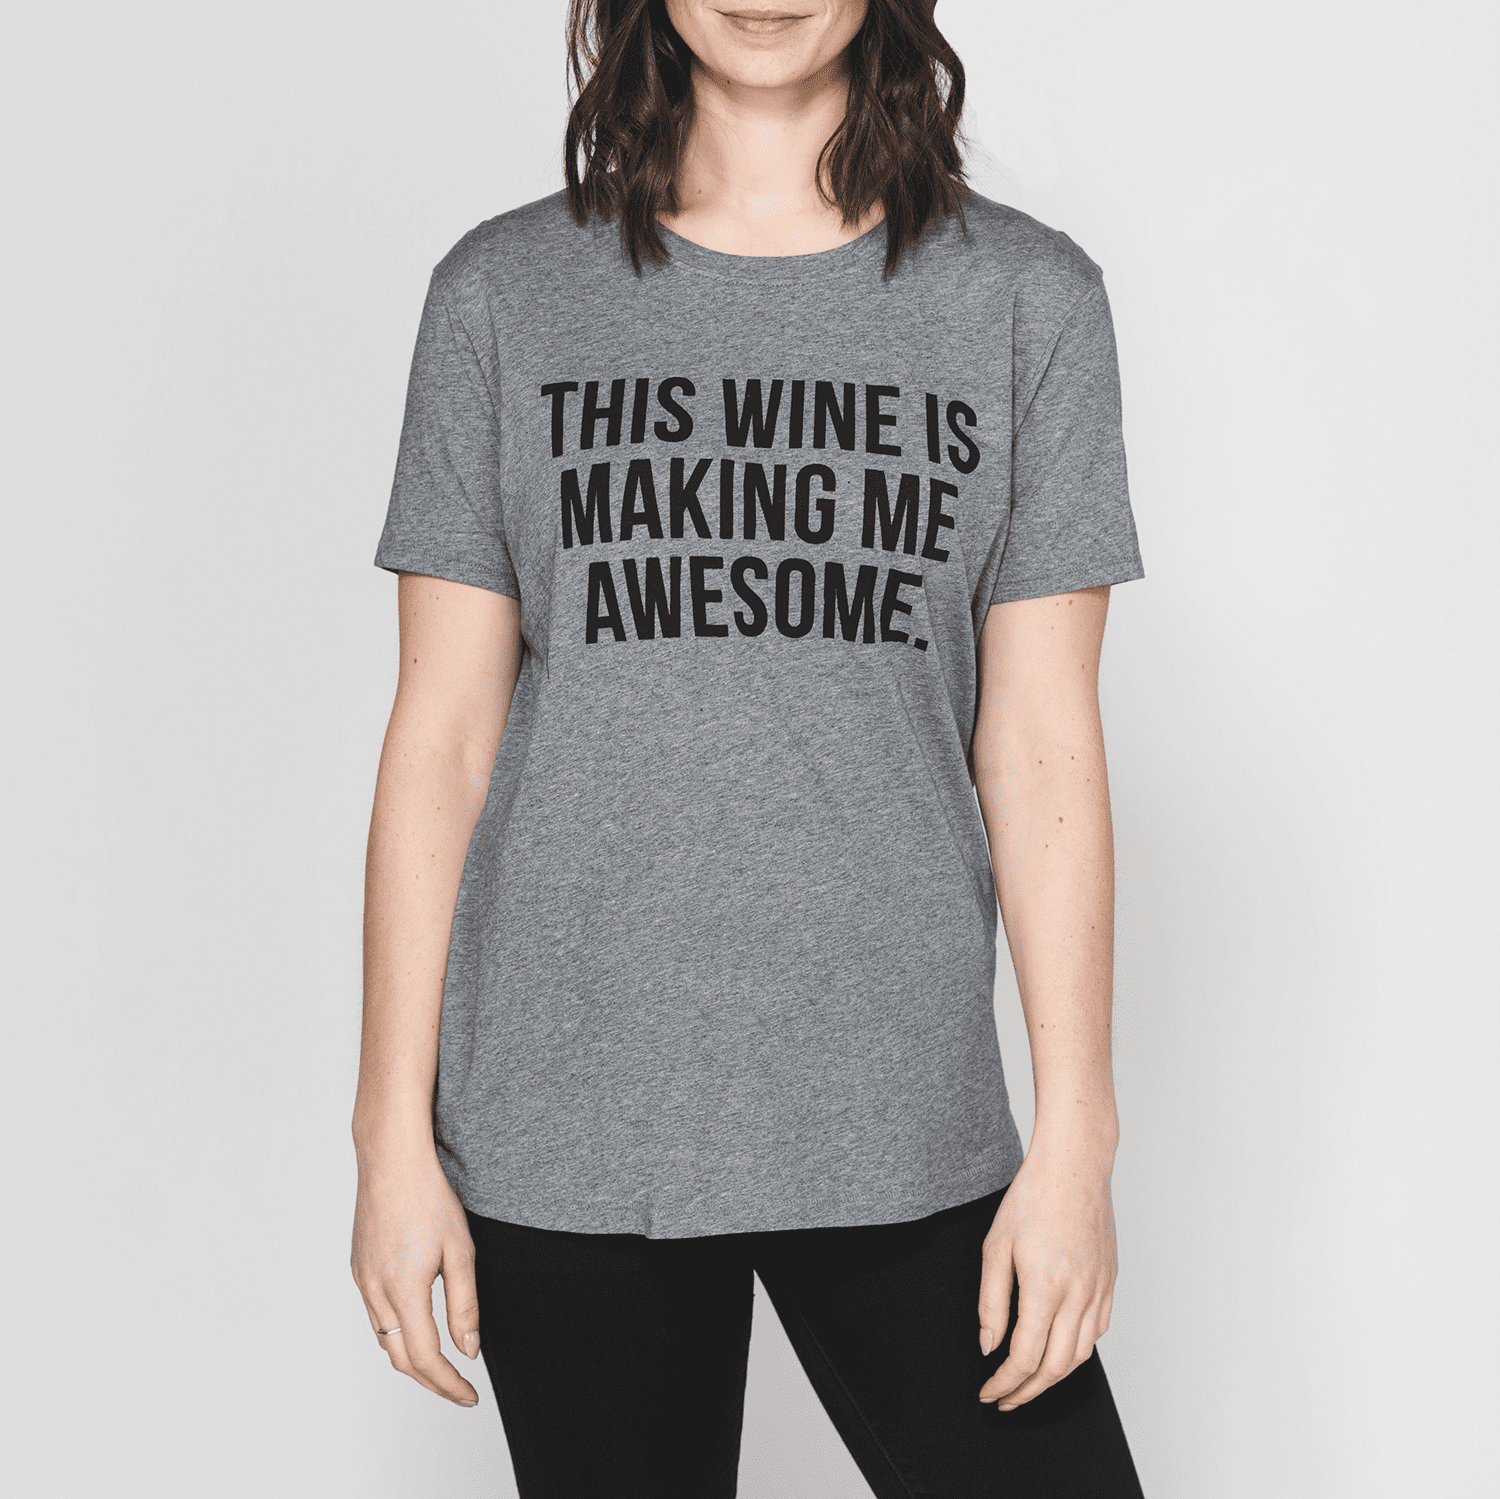 """THIS WINE IS MAKING ME AWESOME"" Tee 